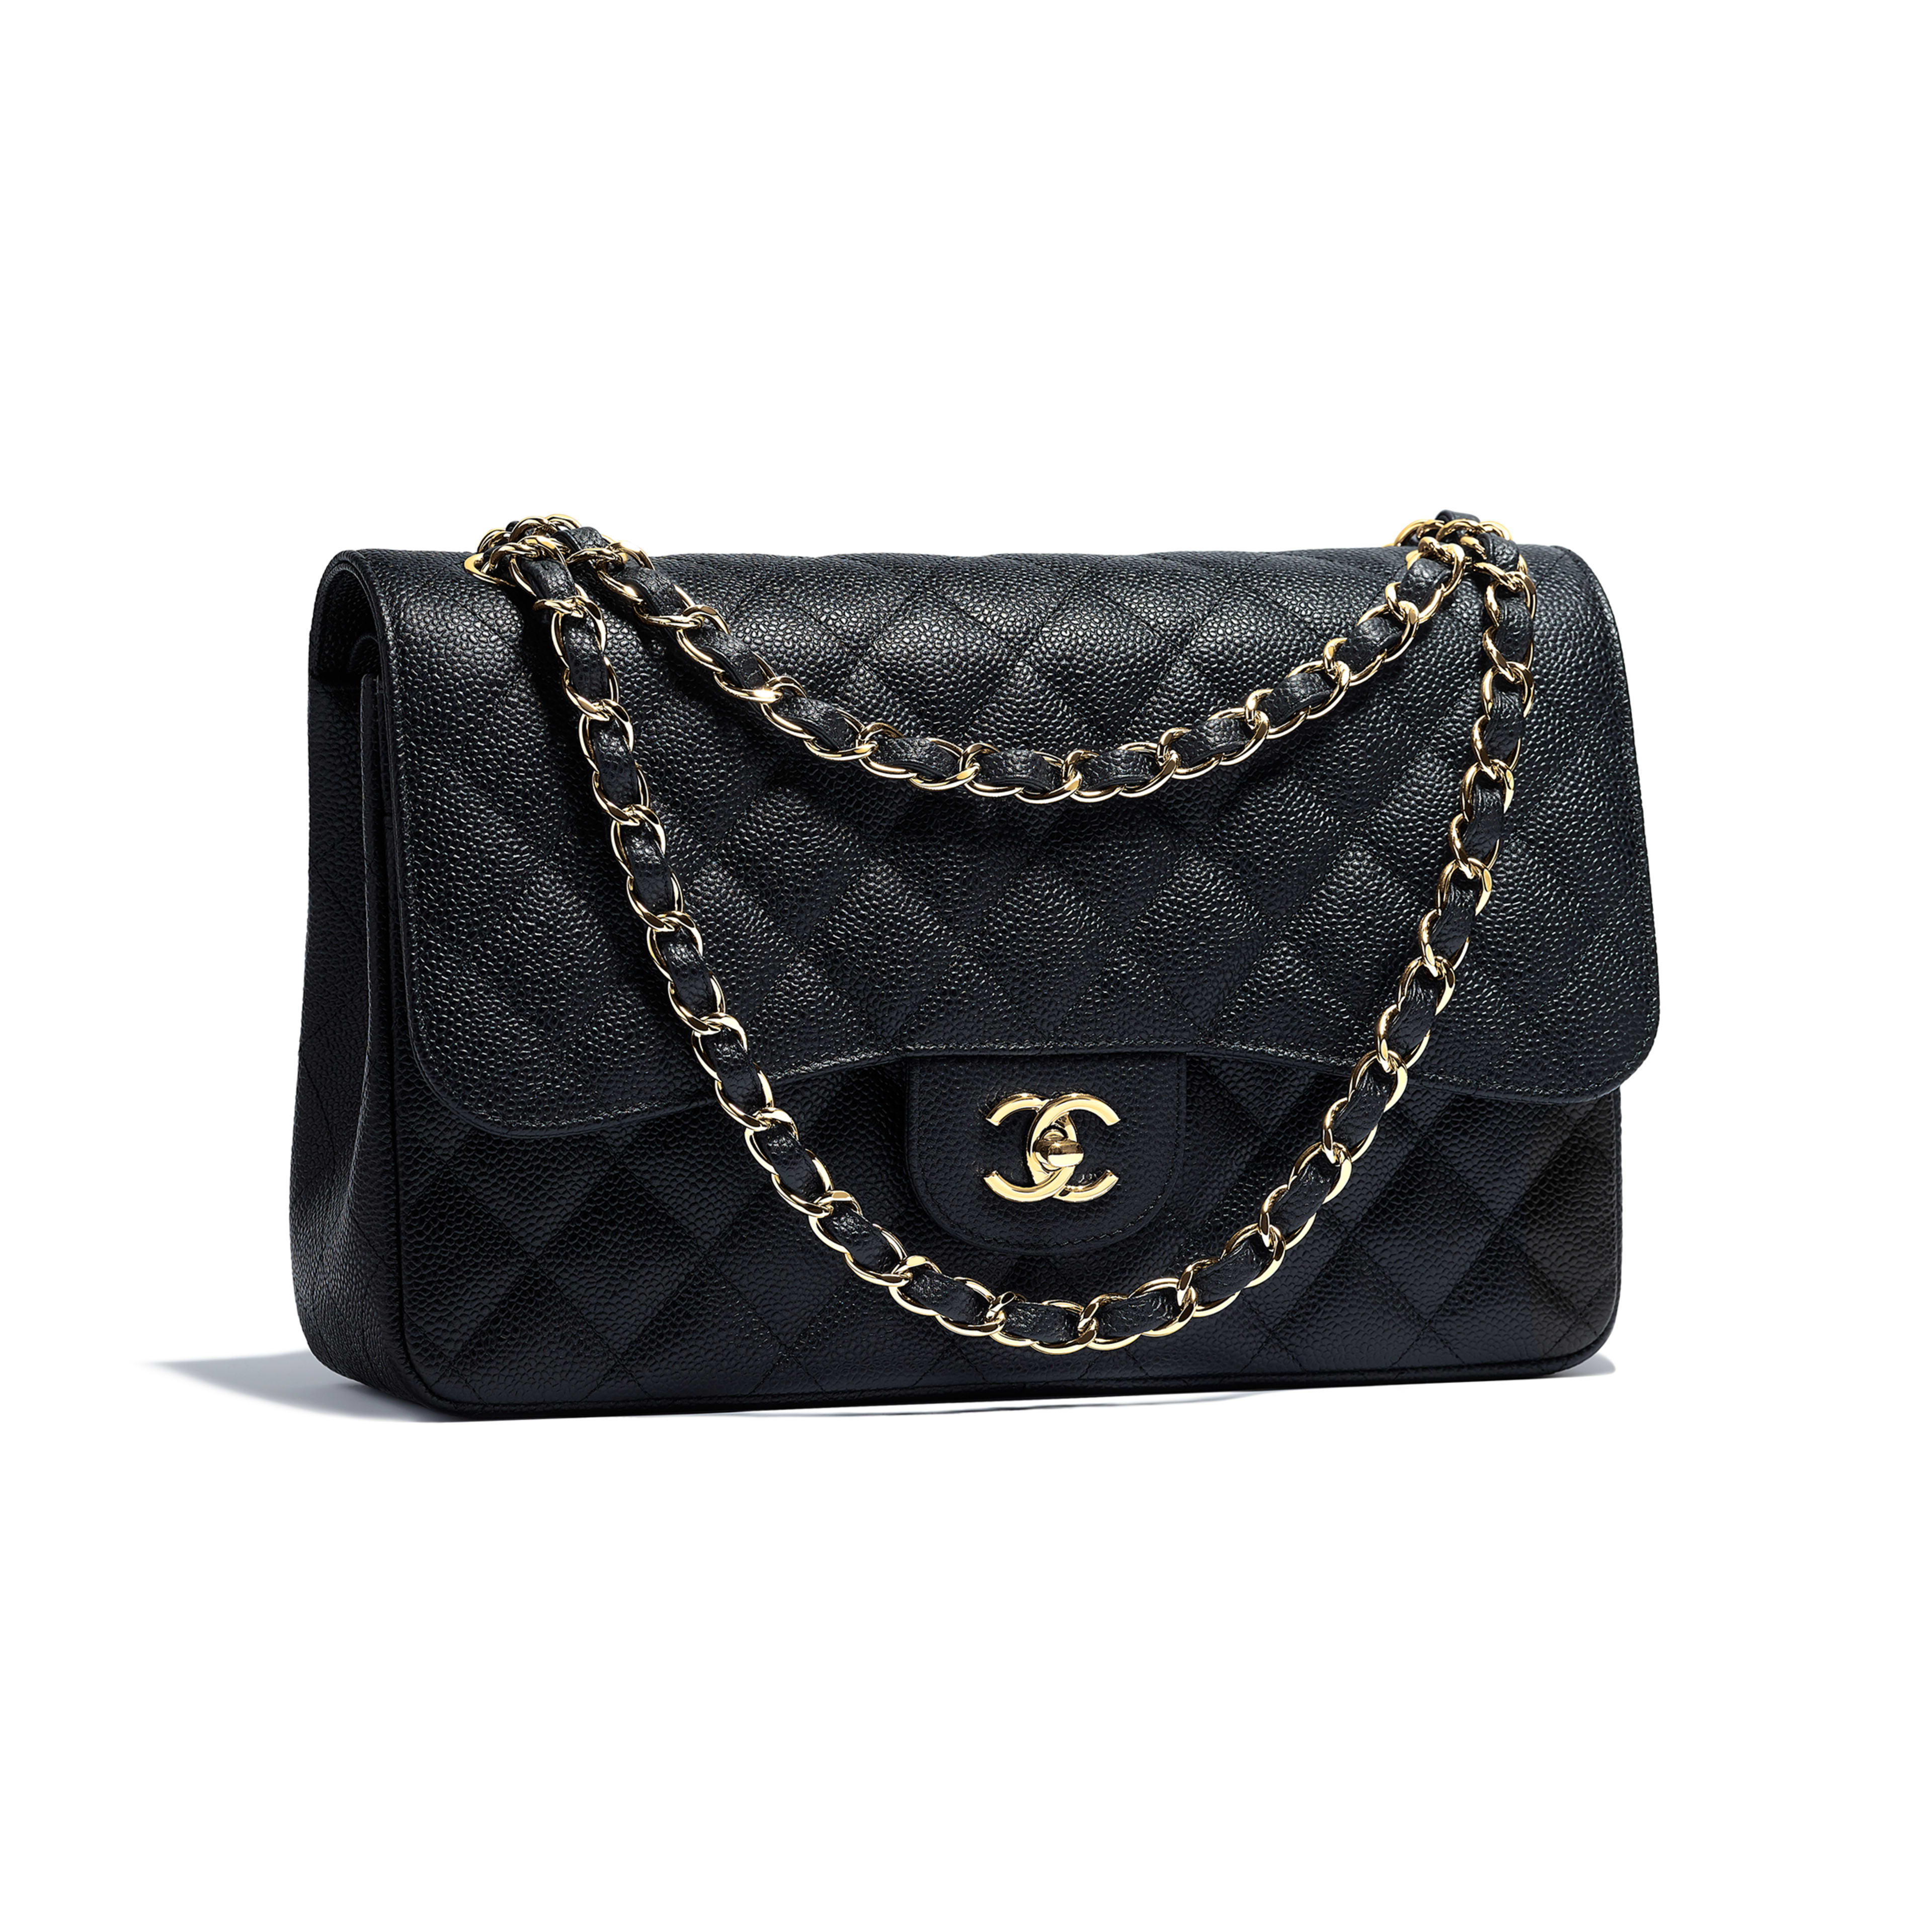 Large Classic Handbag - Black - Grained Calfskin & Gold-Tone Metal - Other view - see full sized version